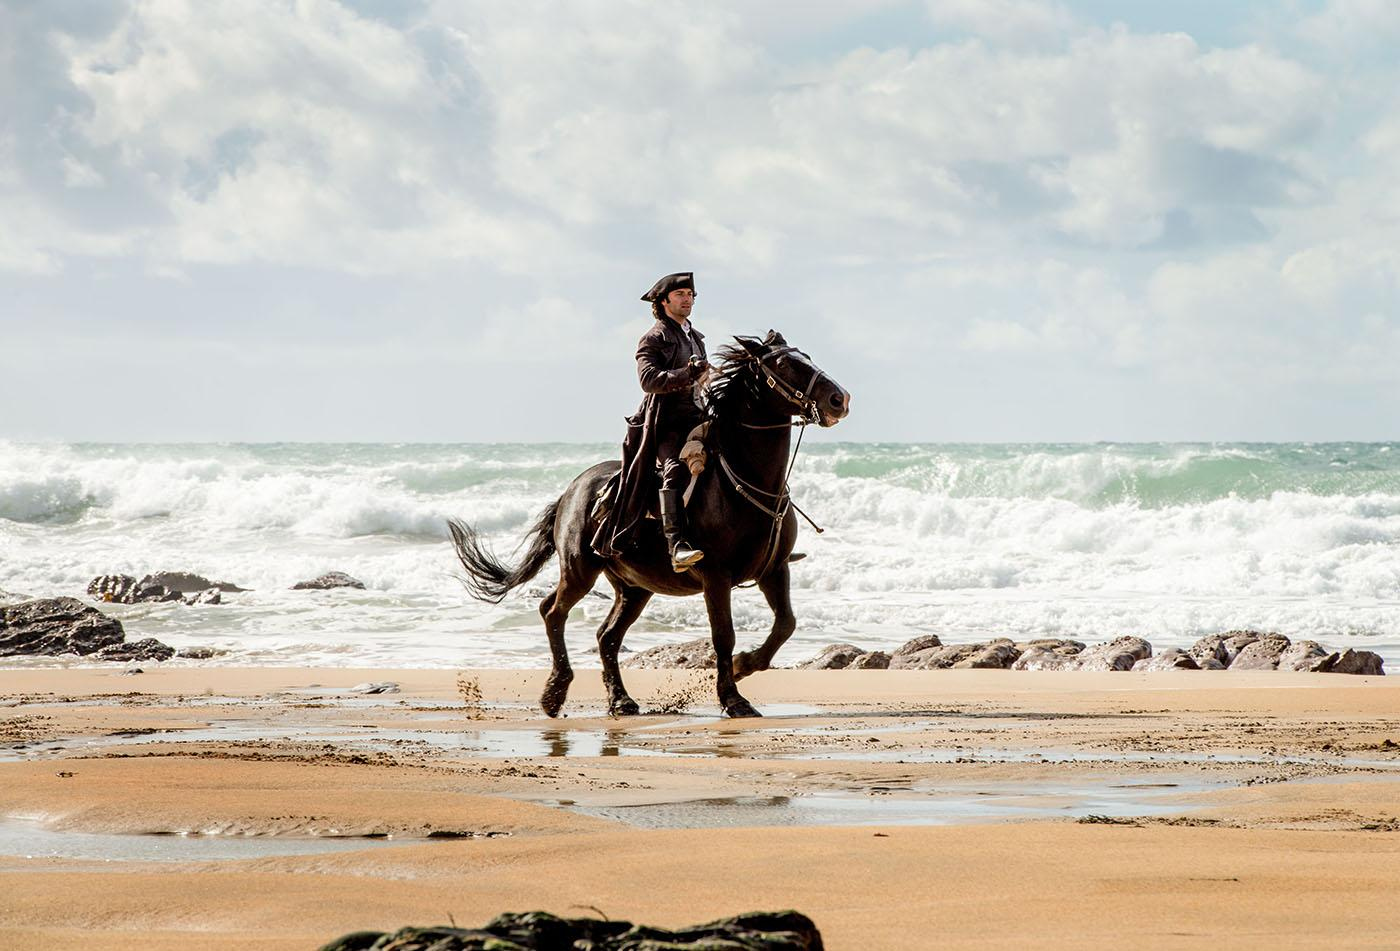 Ross Poldark. Photo: Mammoth Screen for BBC and MASTERPIECE